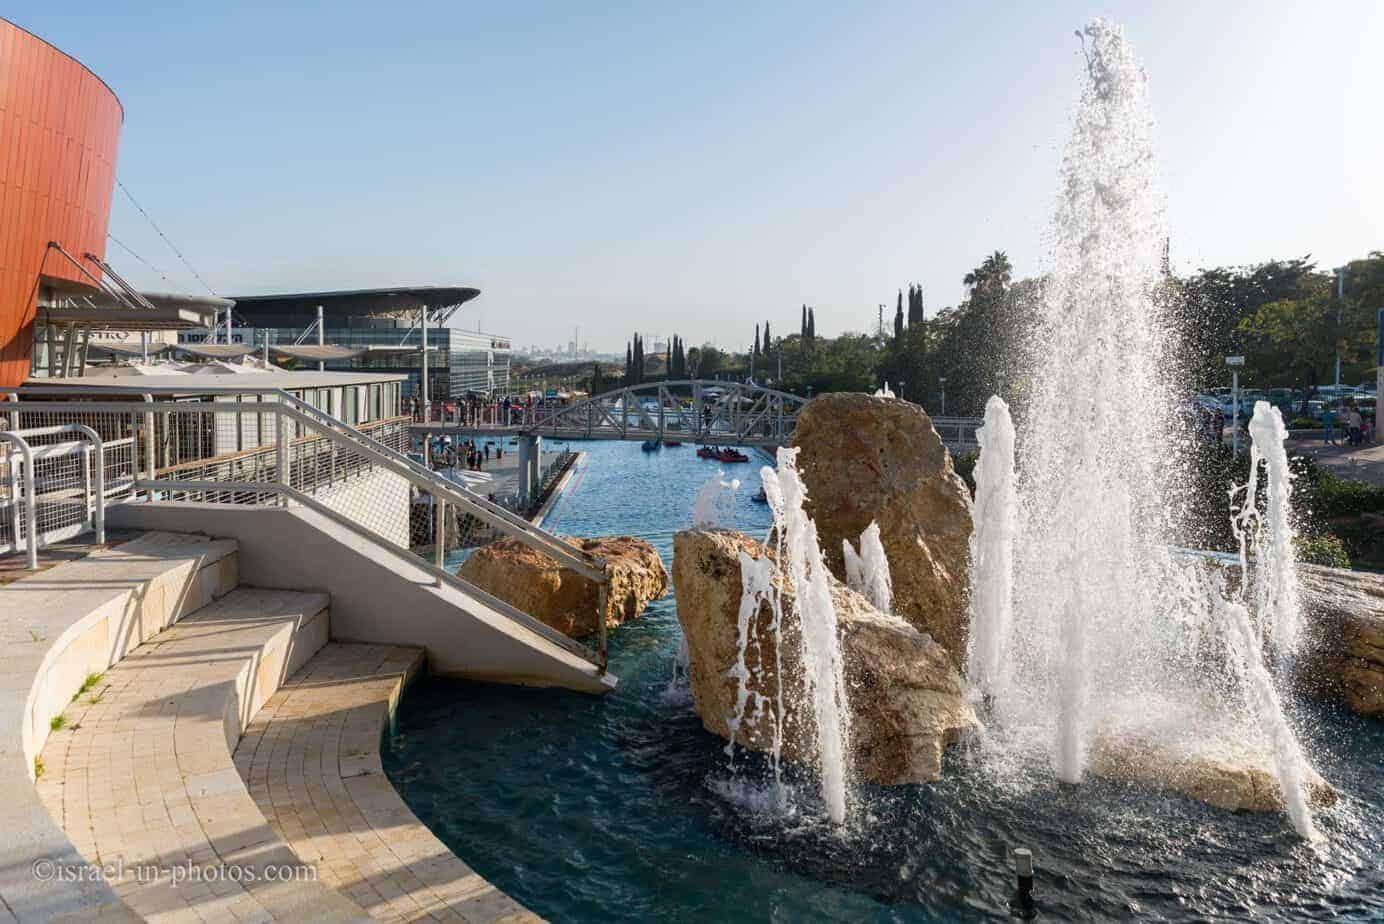 Park Peres in Holon, Israel